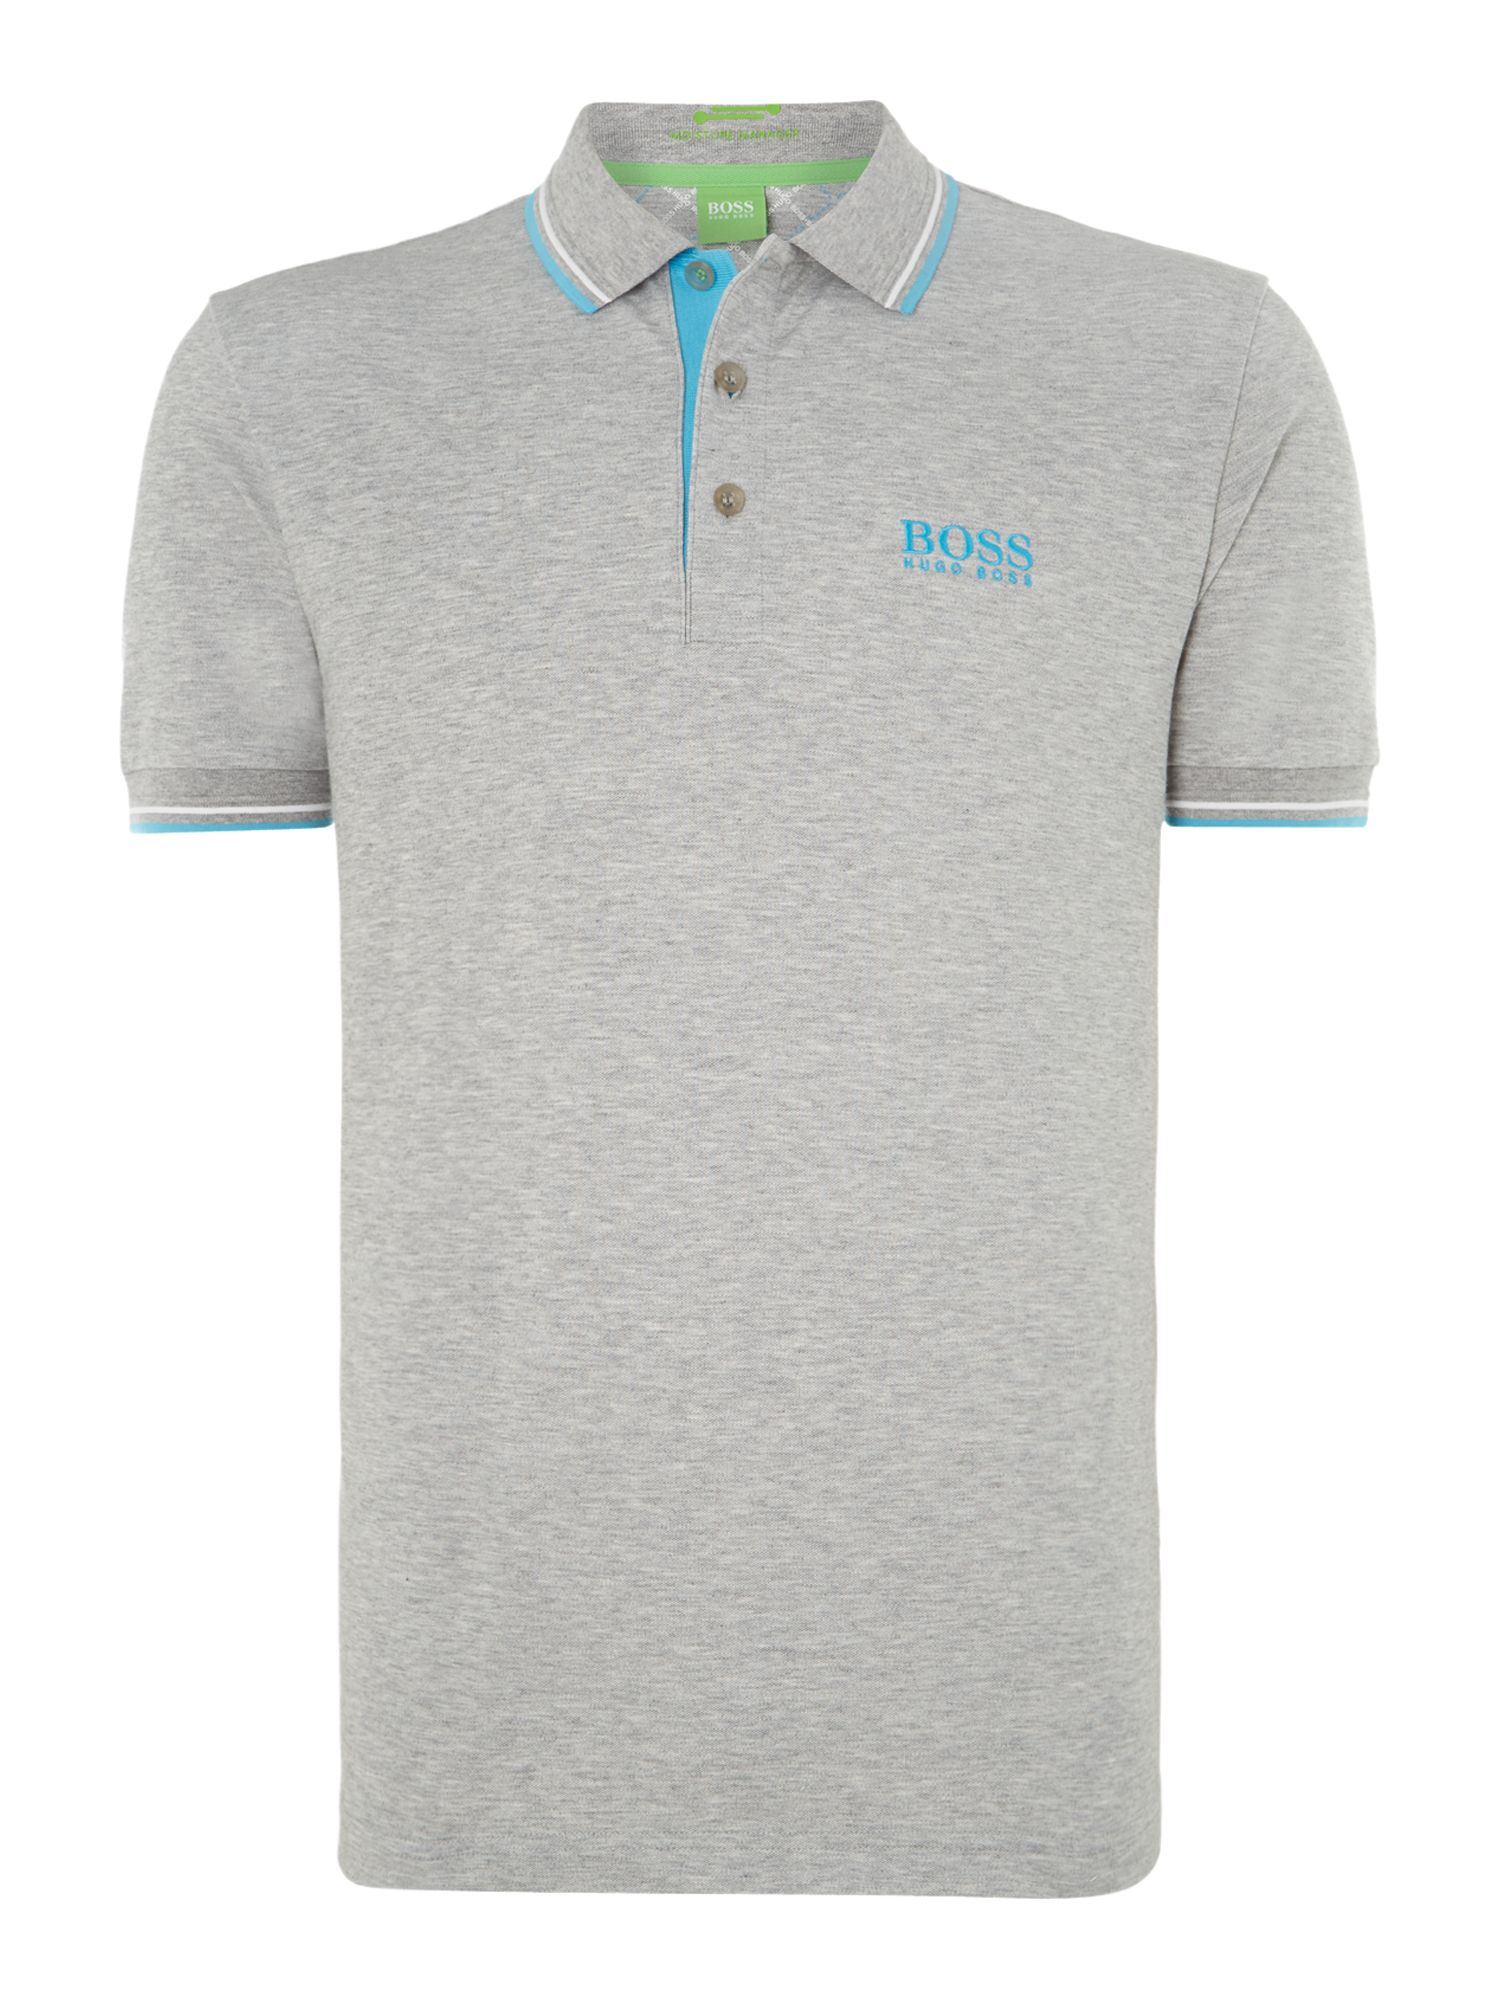 Men&39s Hugo Boss Golf logo polo shirt Grey